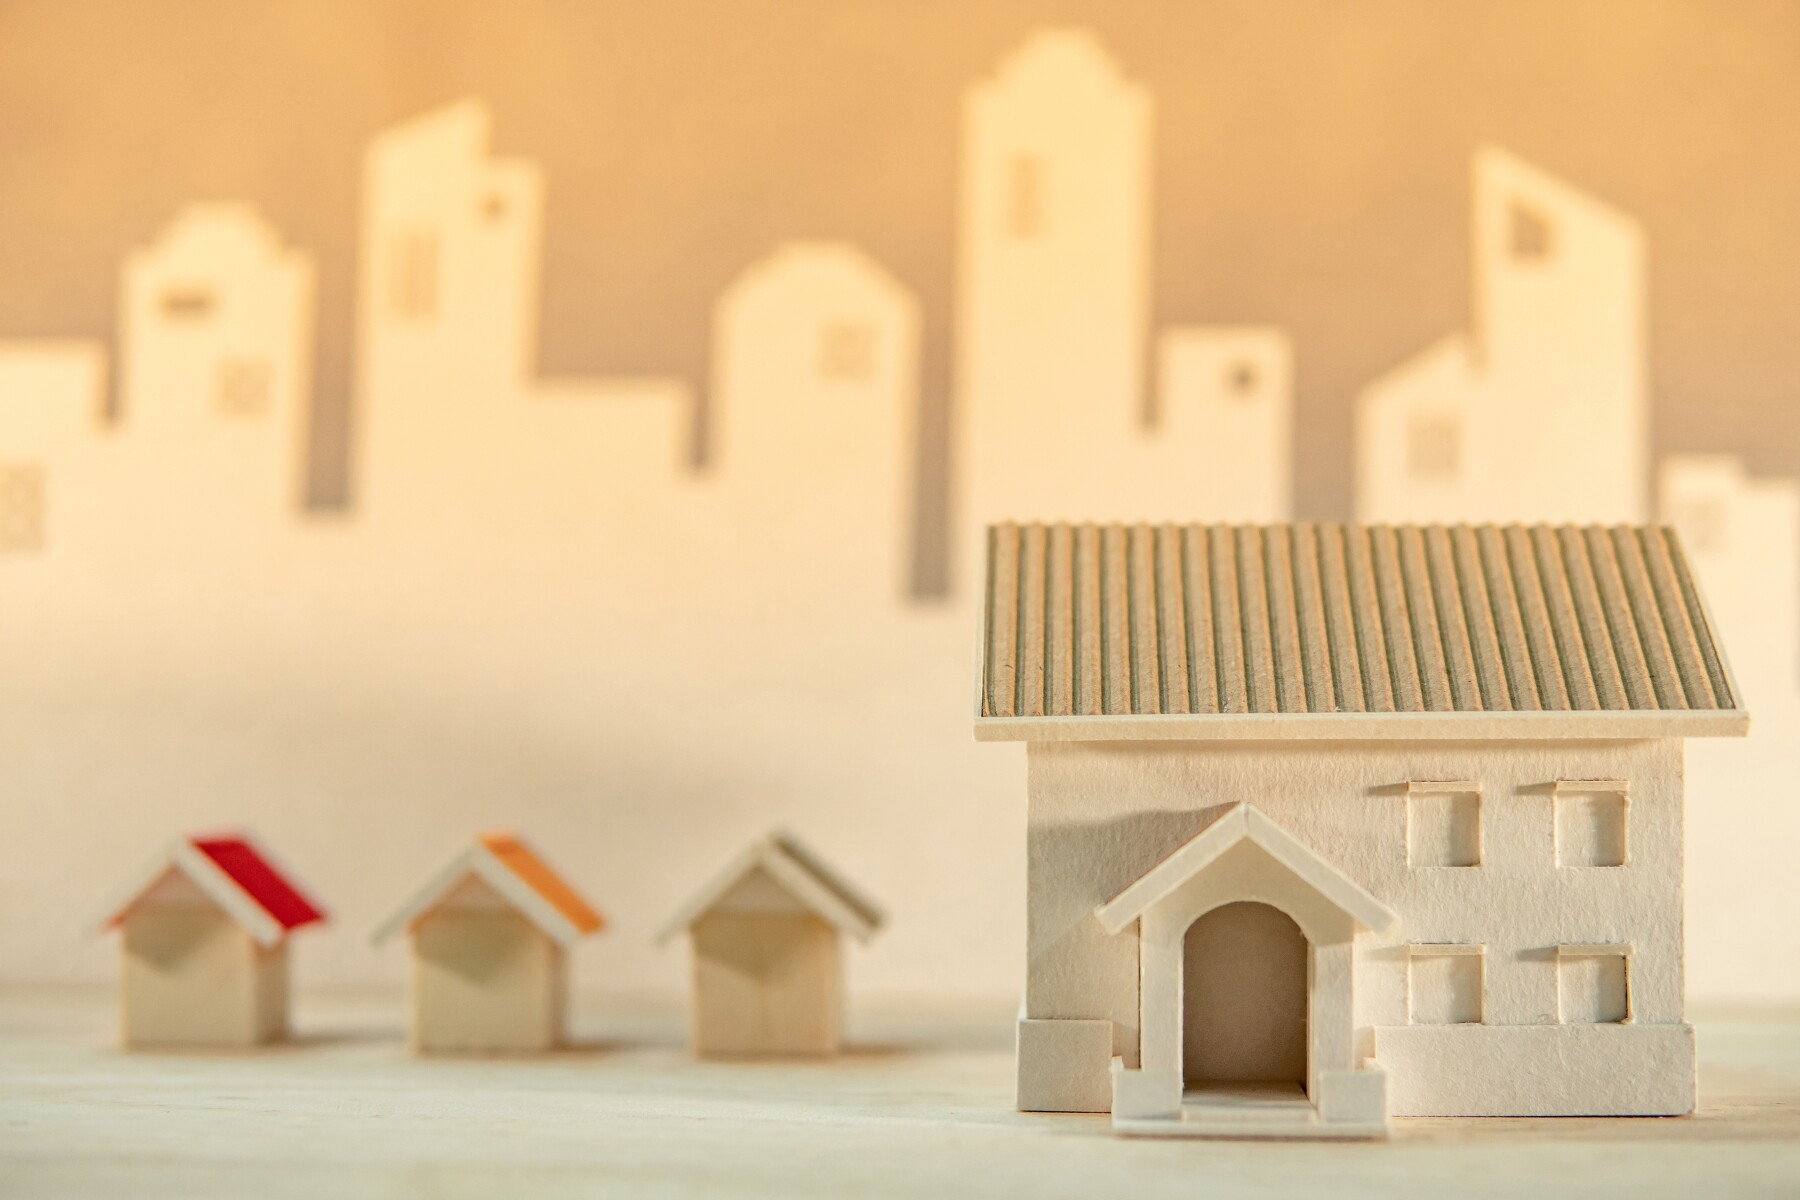 Real estate or property investment. Home design concept. House models on the table with city skyline background. Residential building development